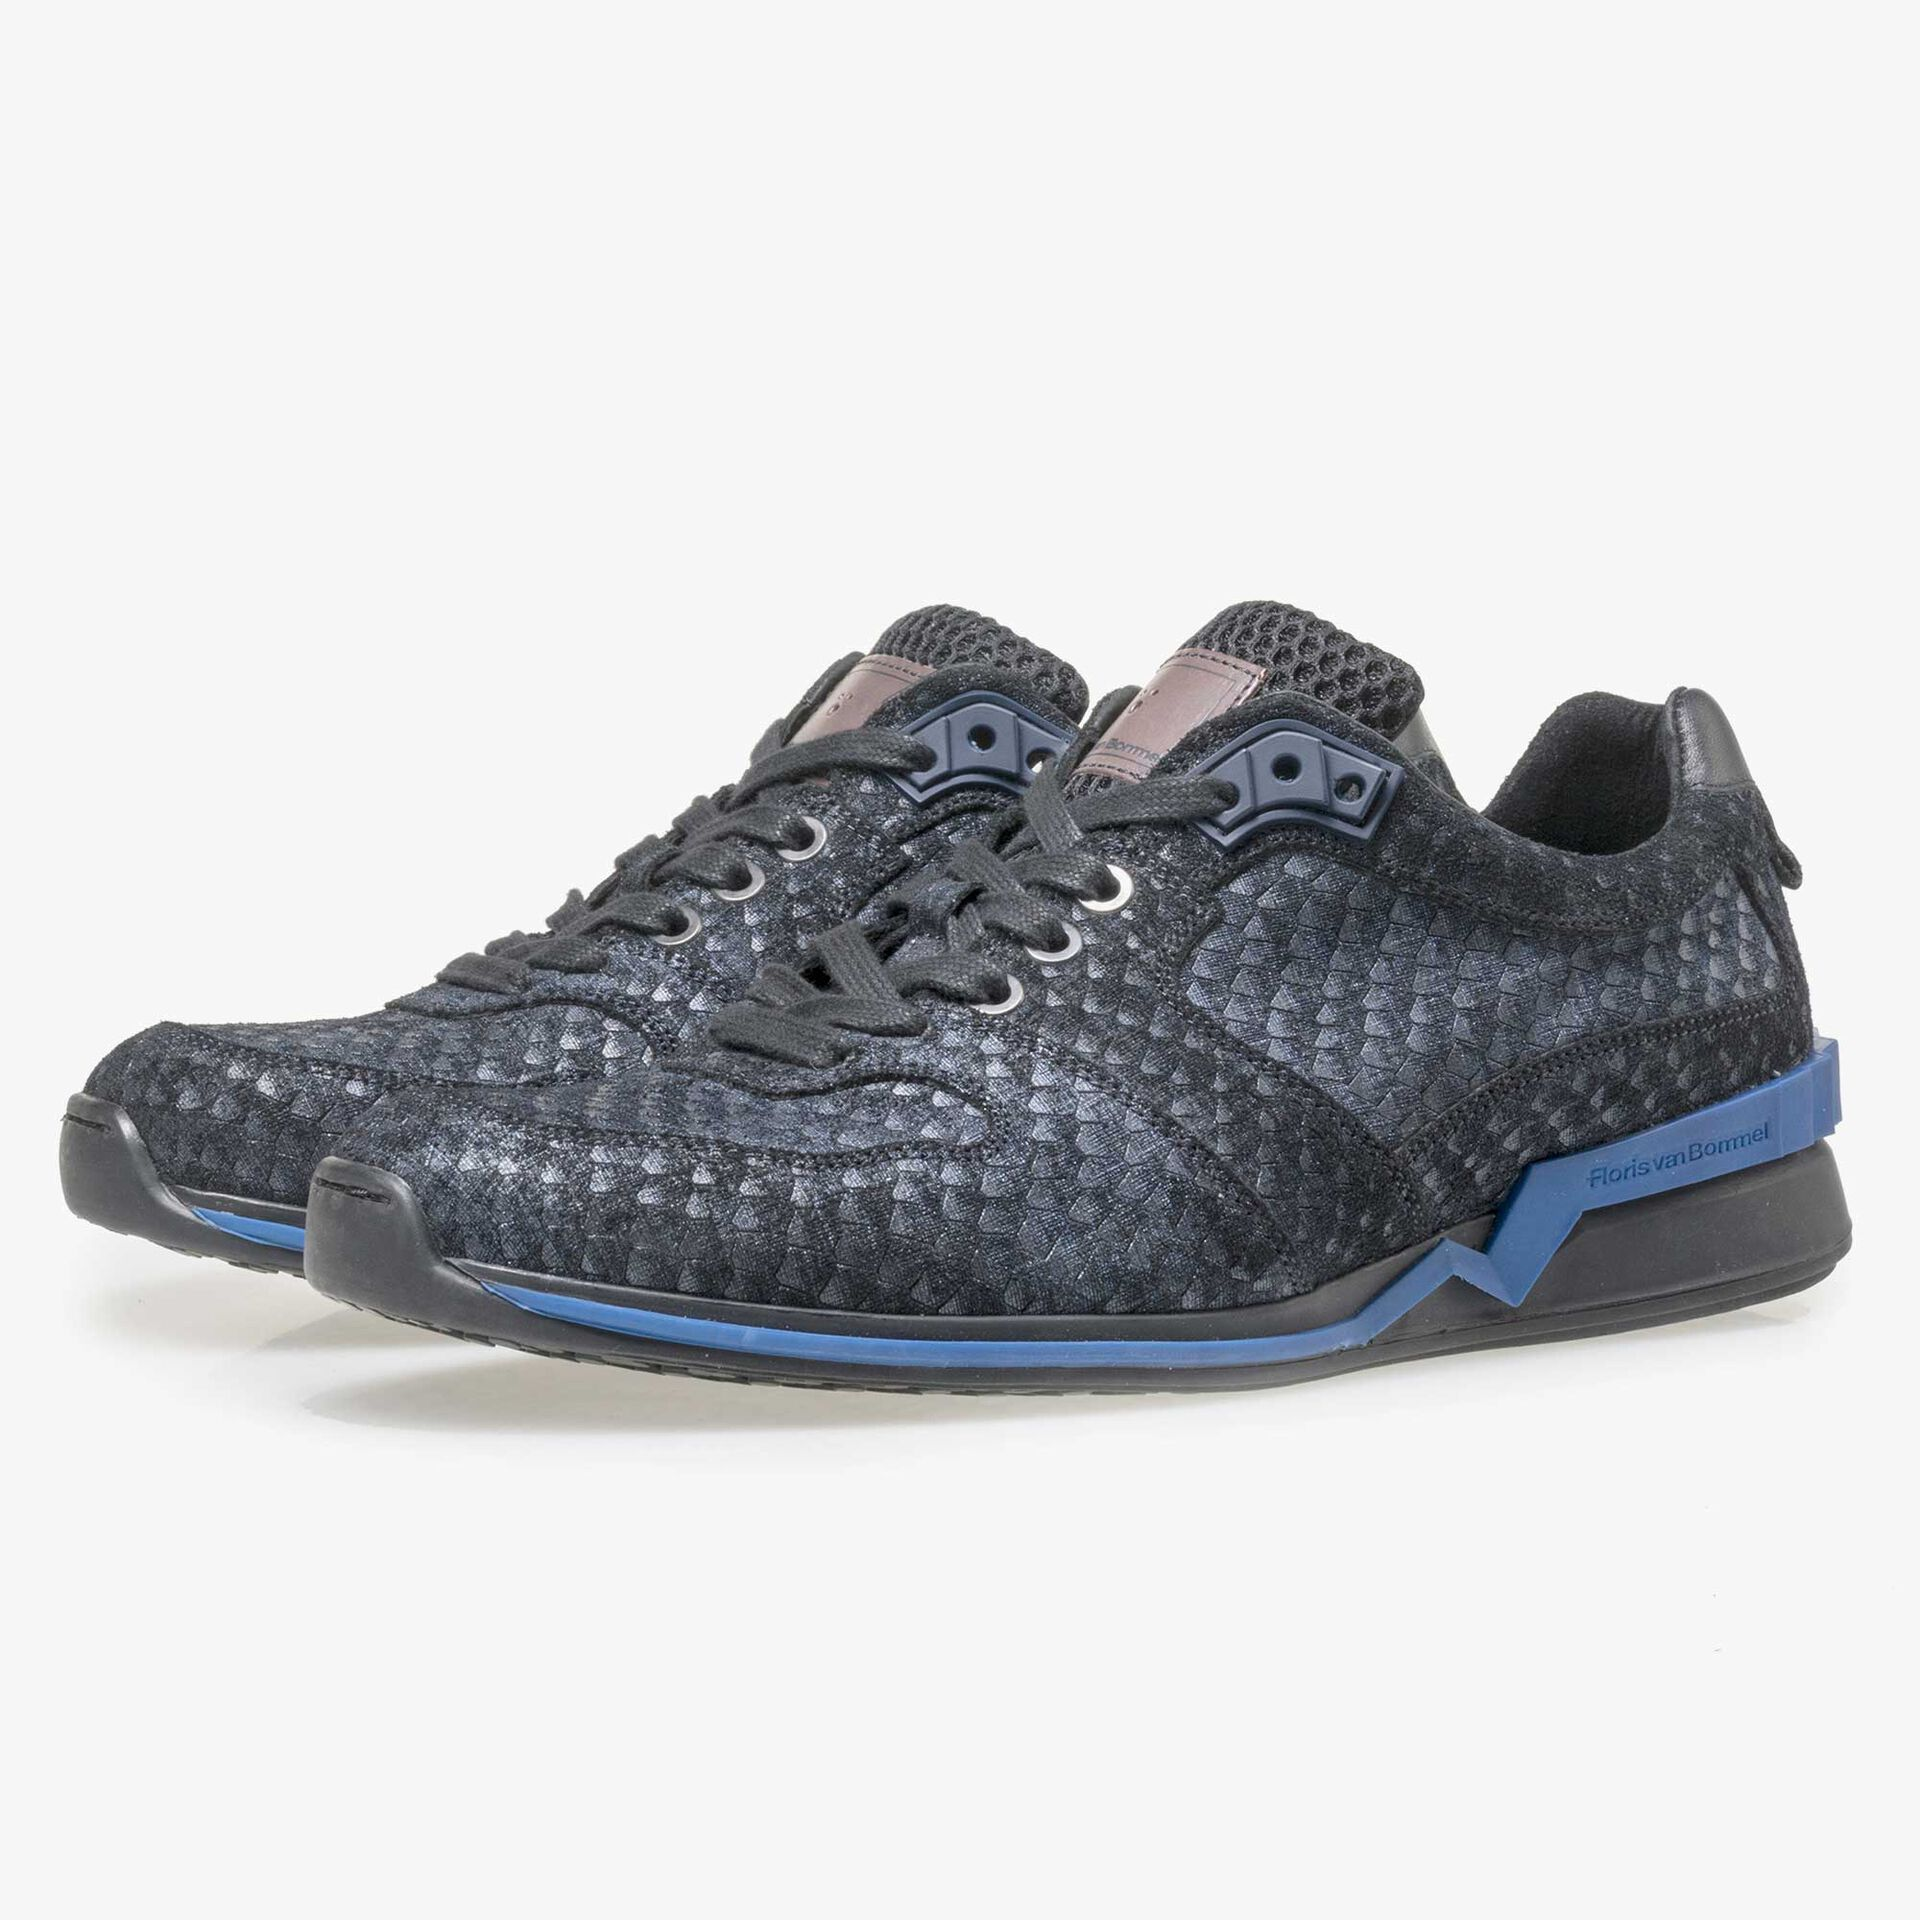 Floris van Bommel blue suede leather snake print sneaker